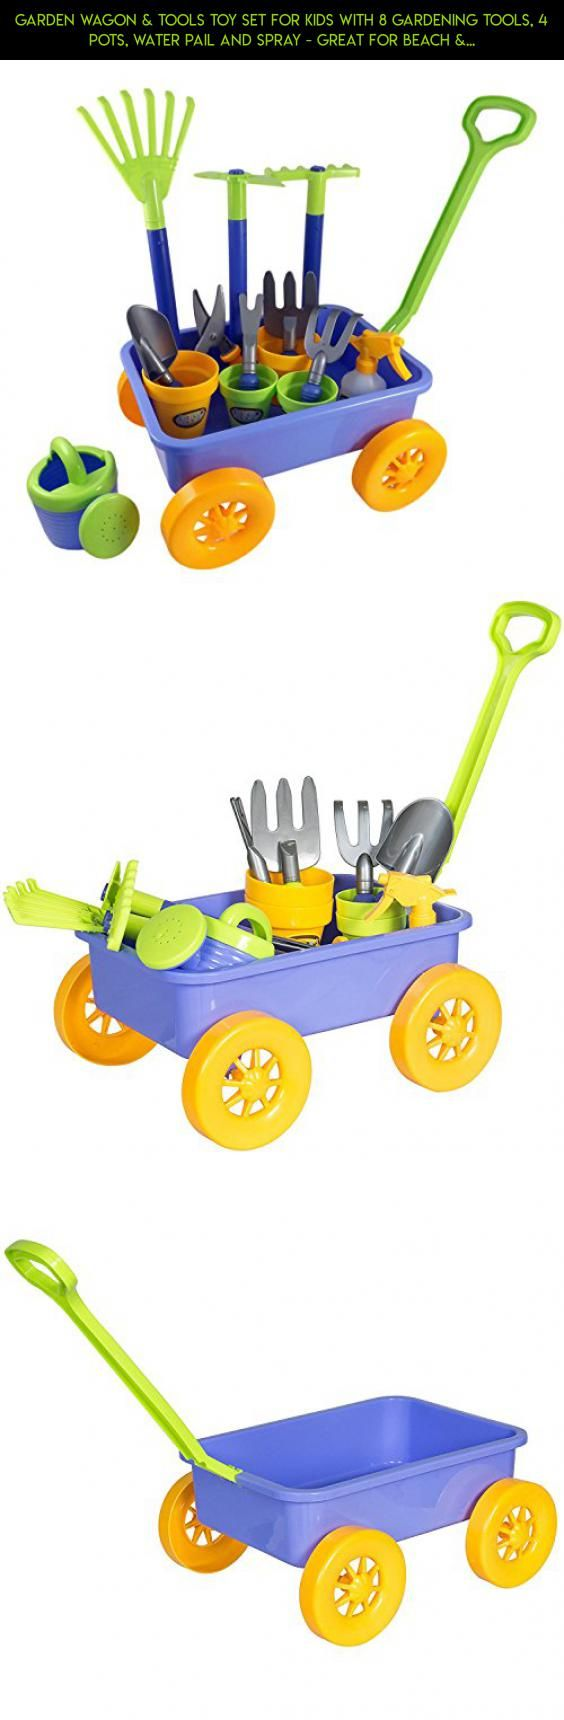 Garden Wagon & Tools Toy Set for Kids with 8 Gardening Tools, 4 Pots, Water Pail and Spray - Great for Beach & Sand Too! #fpv #for #gadgets #products #drone #shopping #parts #plans #kids #technology #tech #racing #camera #kit #gardening